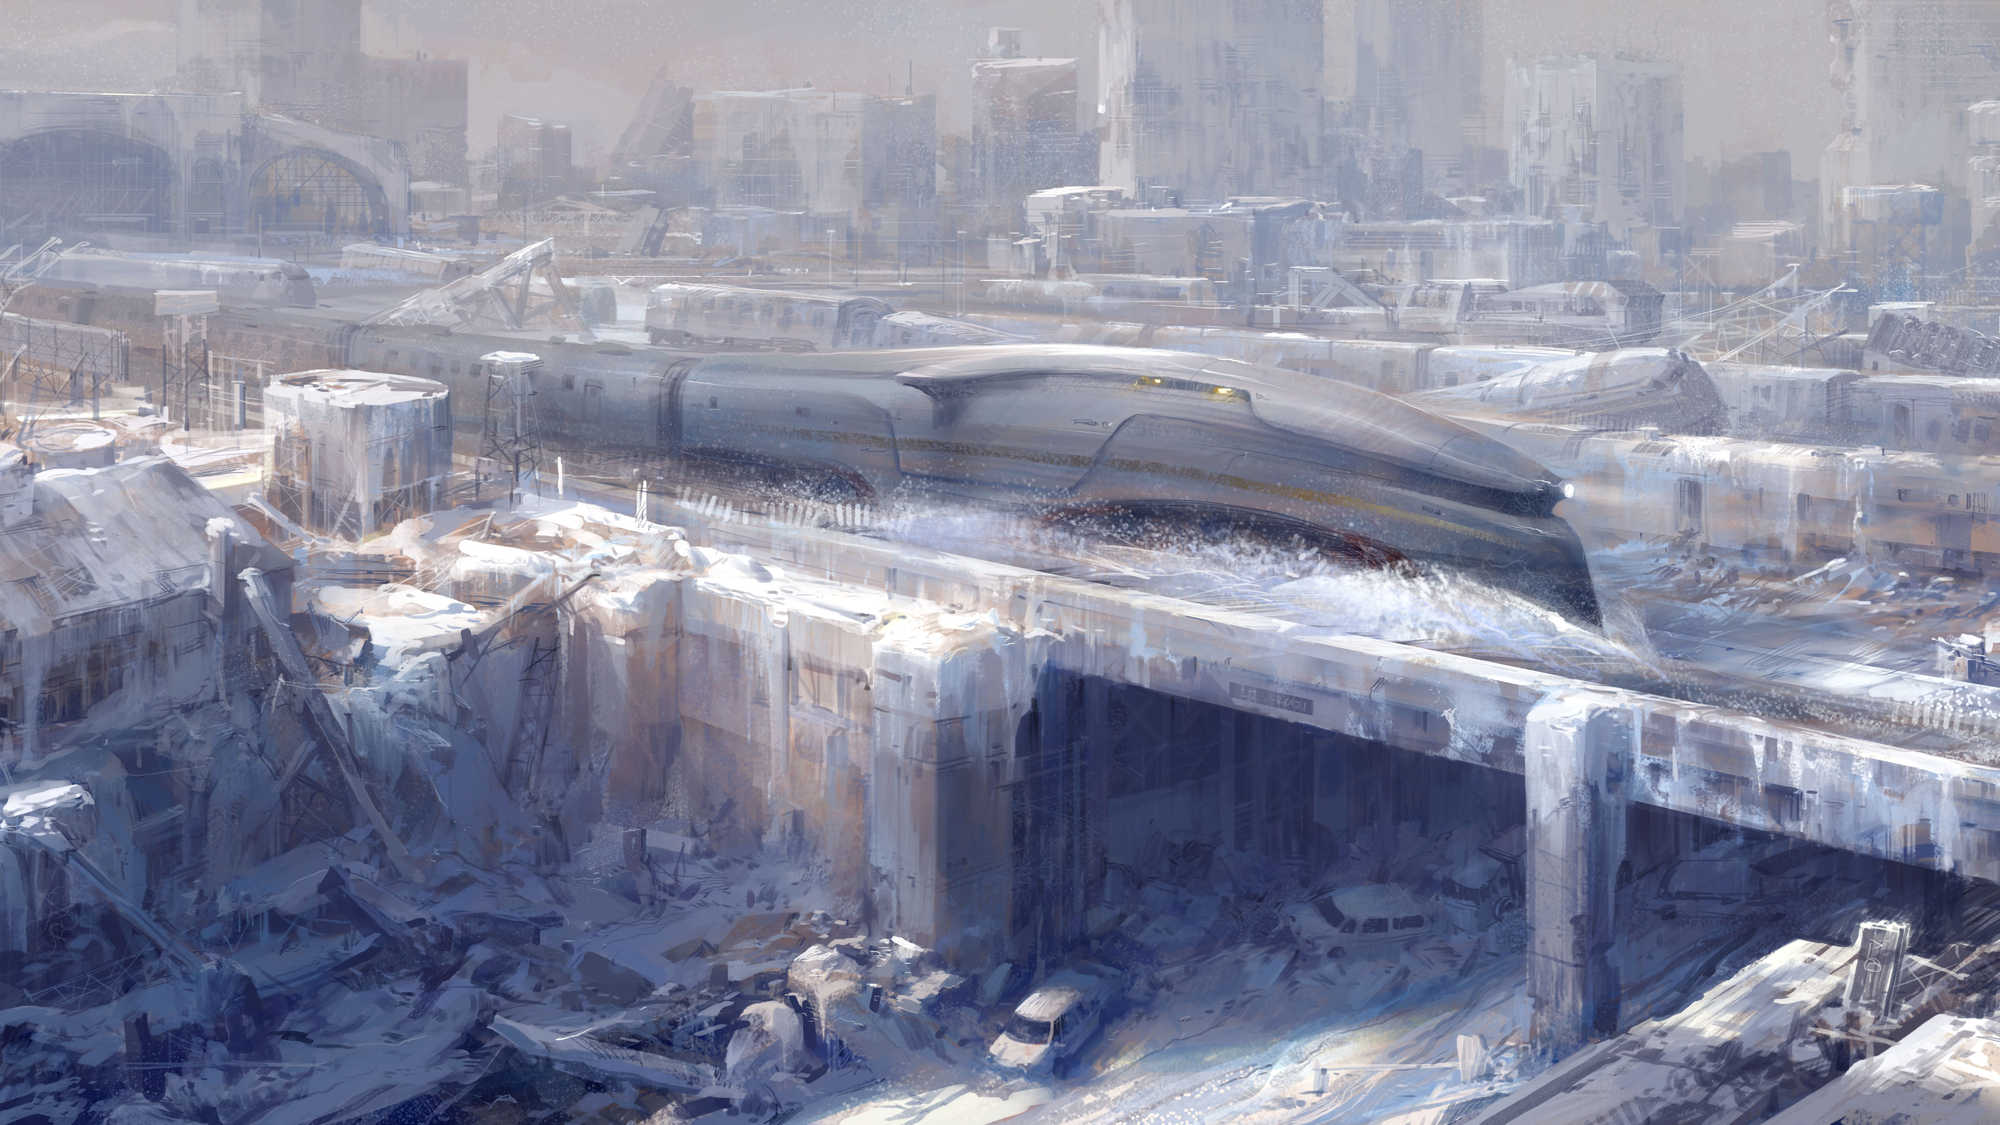 Concept art from the movie Snowpiercer